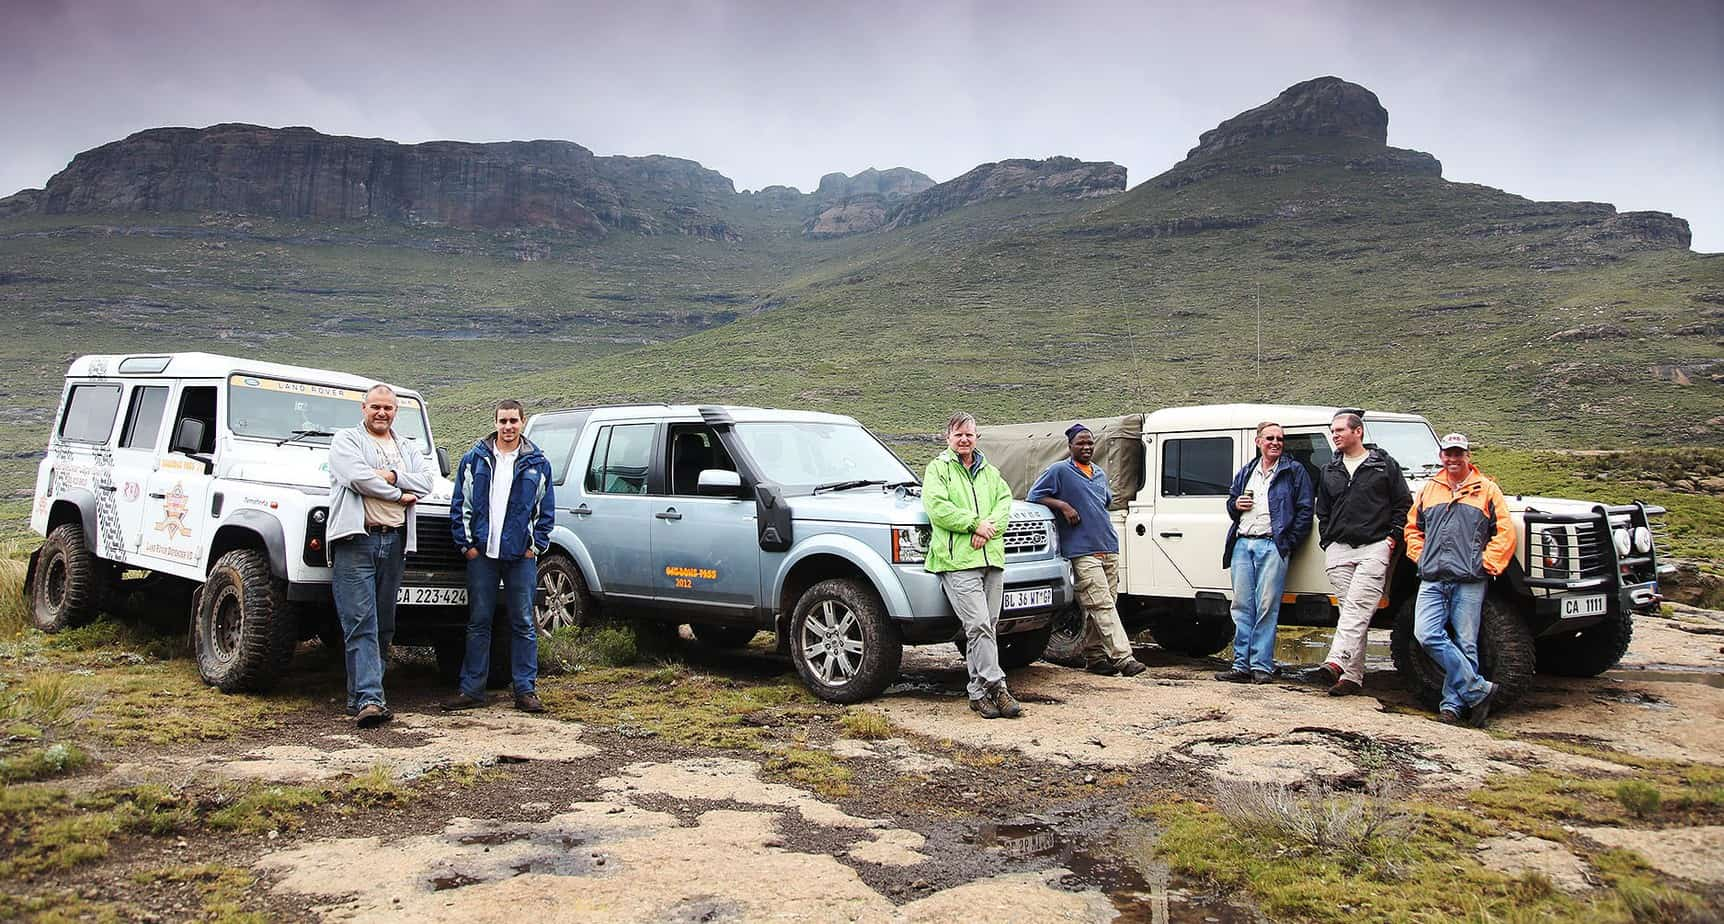 An LR4 on Southern Africa's most challenging public road – and all to prove a point.